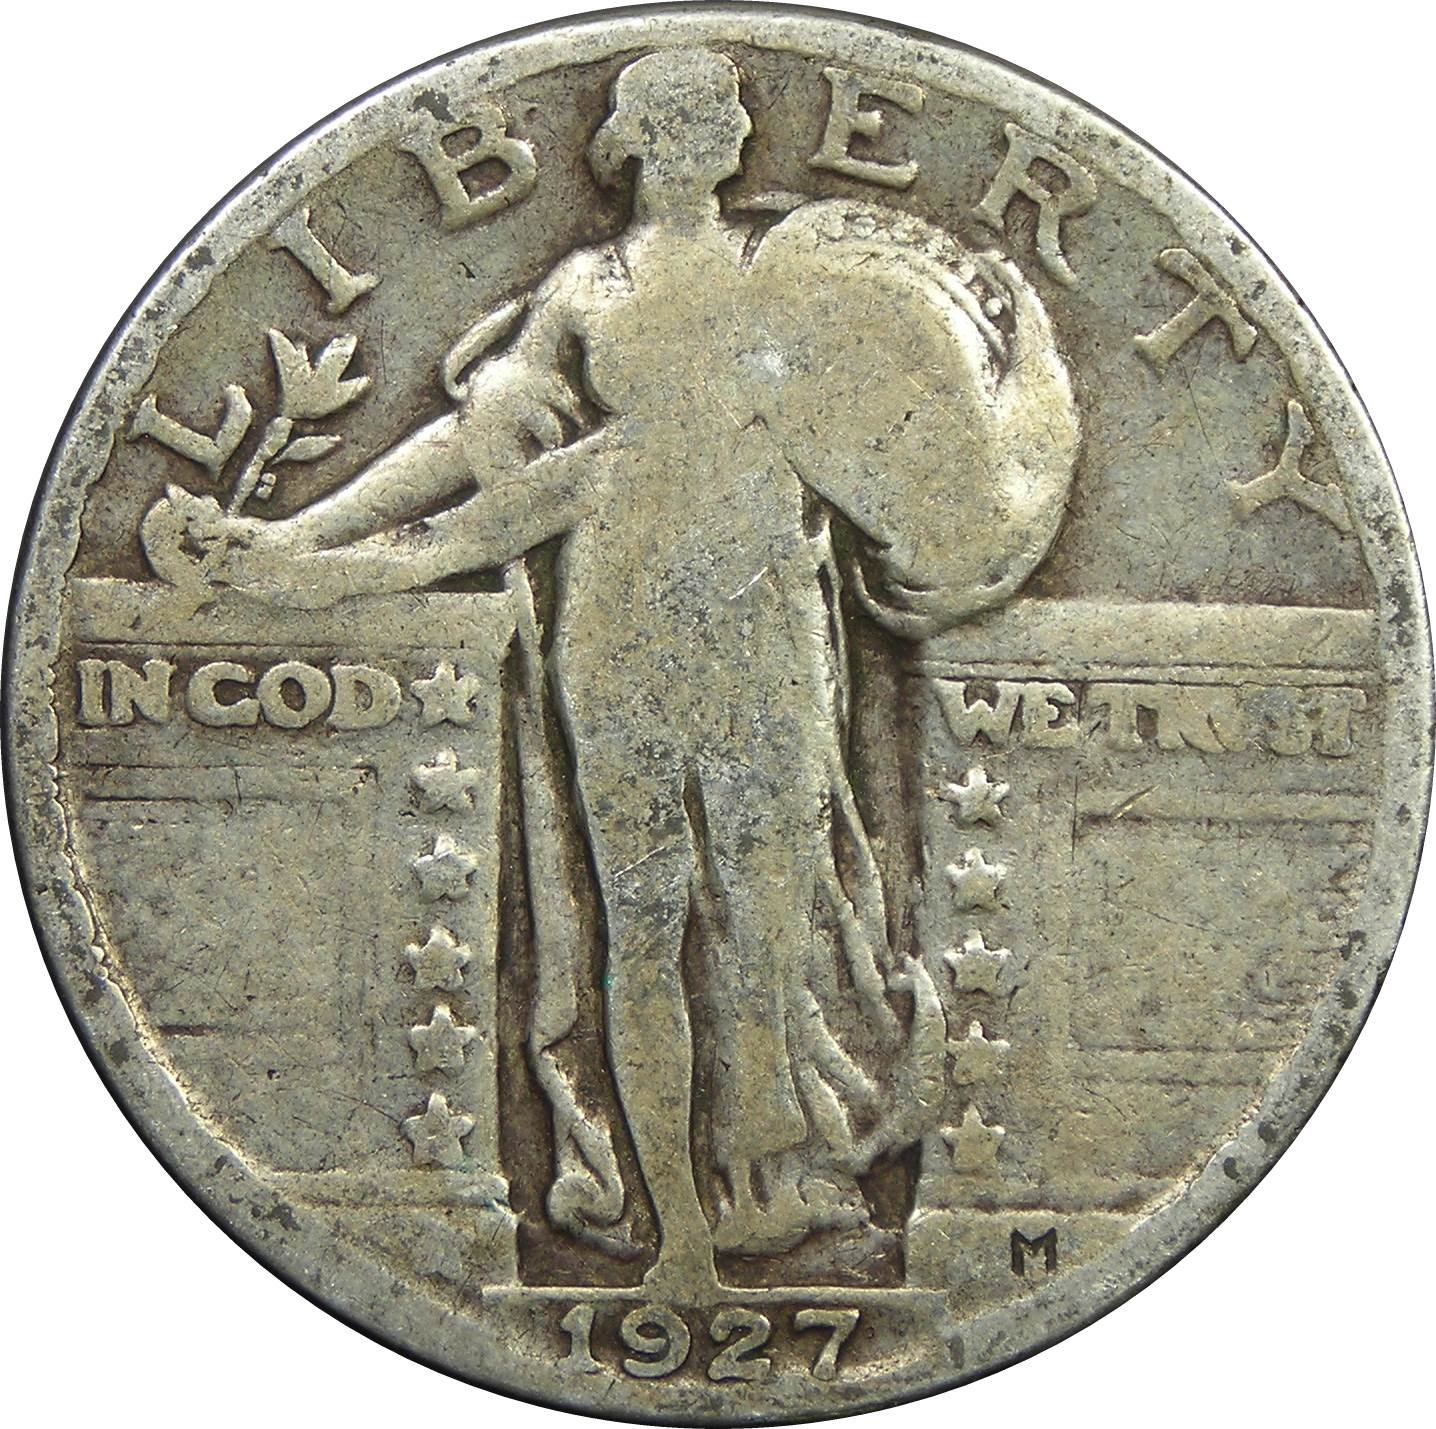 1917-1930 U.S. Standing Liberty Silver Quarter Dollar, Circulated Condition